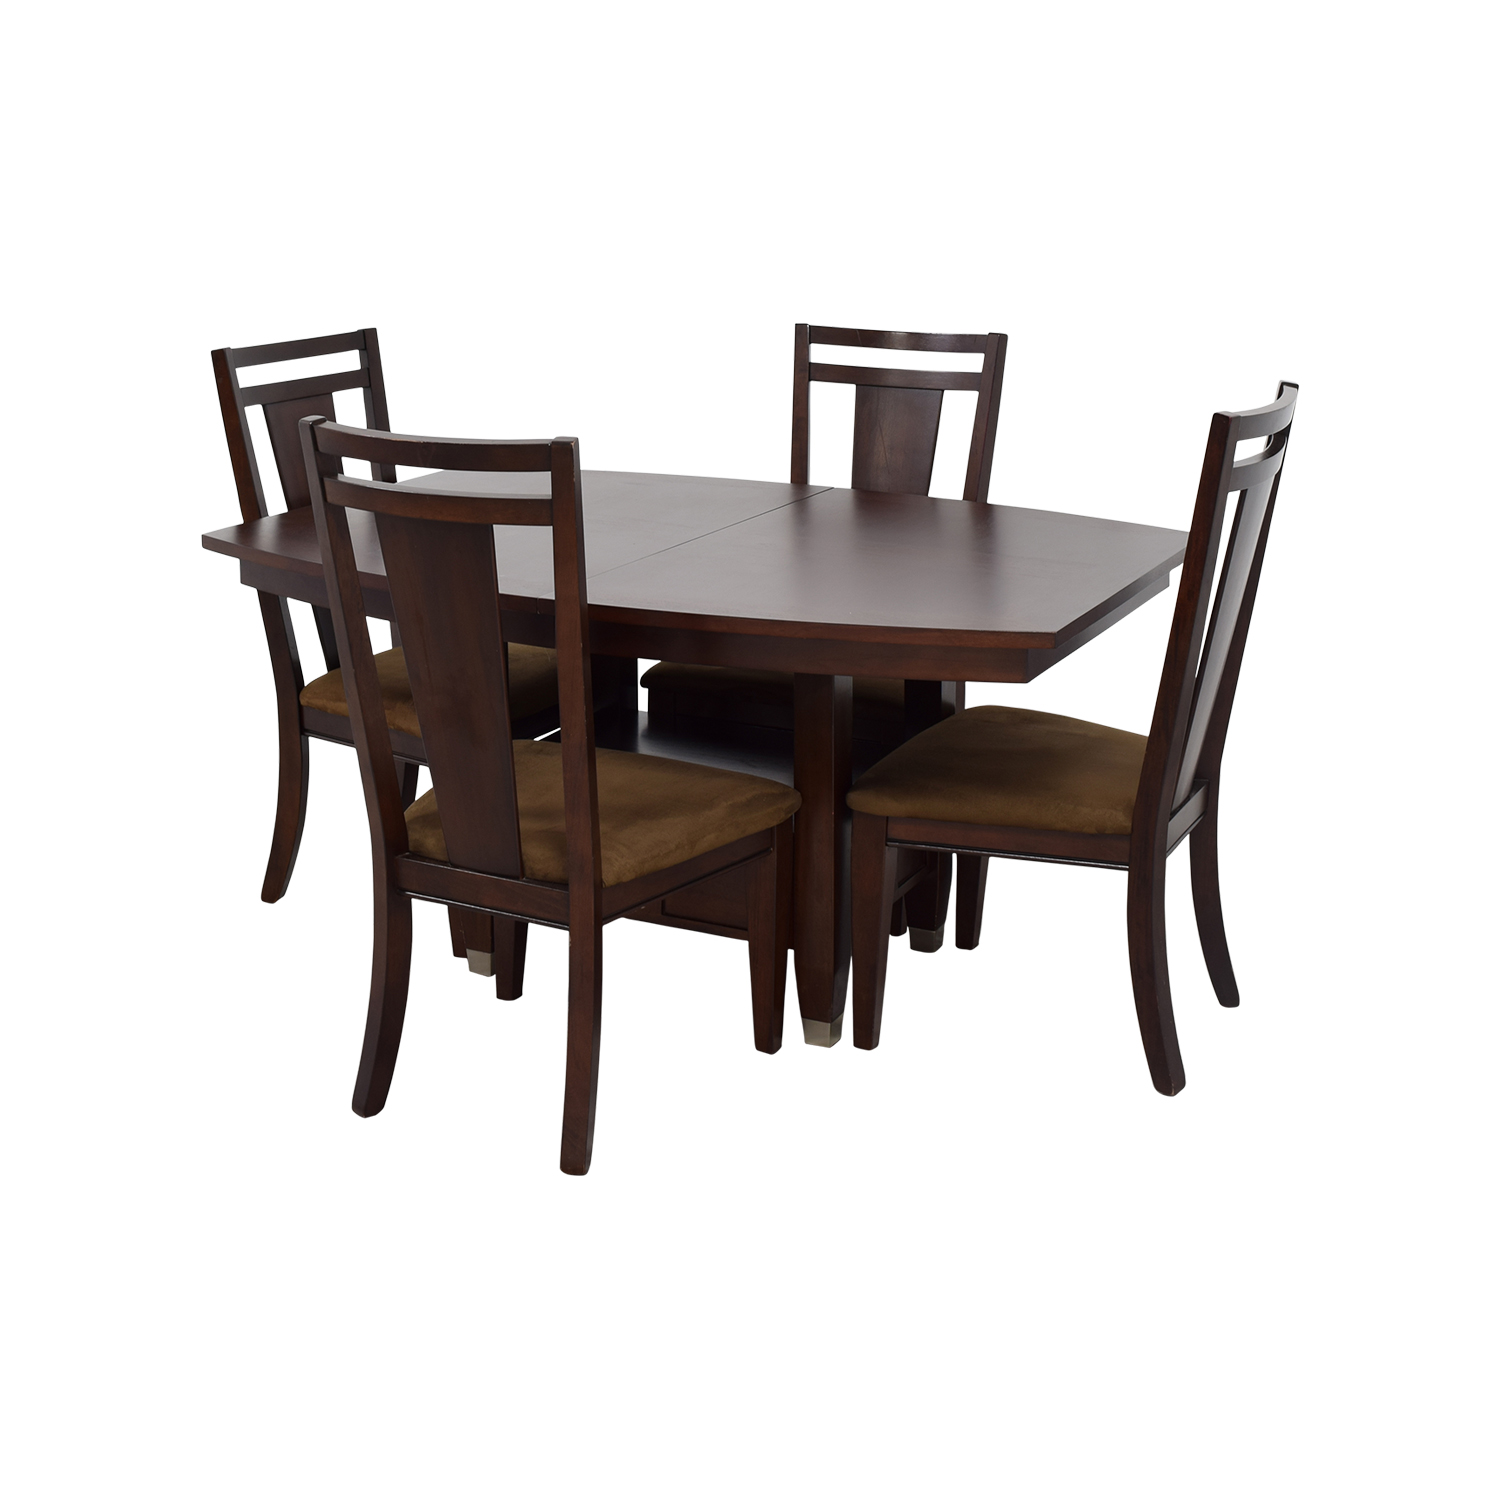 Broyhill Broyhill Wood Dining Table Set